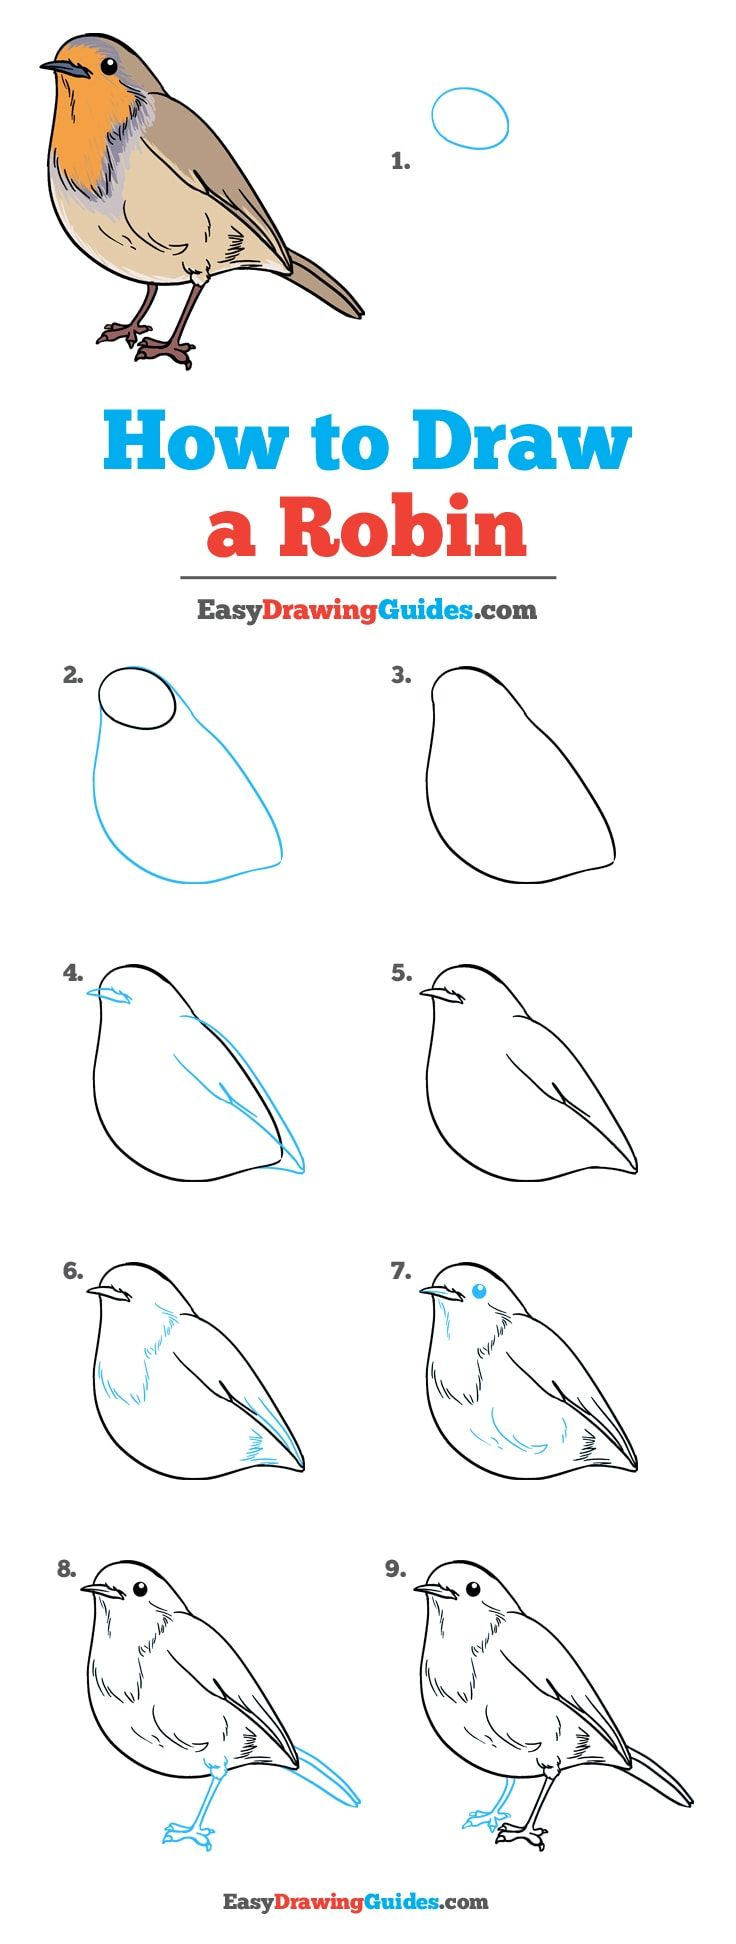 How to Draw a Robin - Really Easy Drawing Tutorial